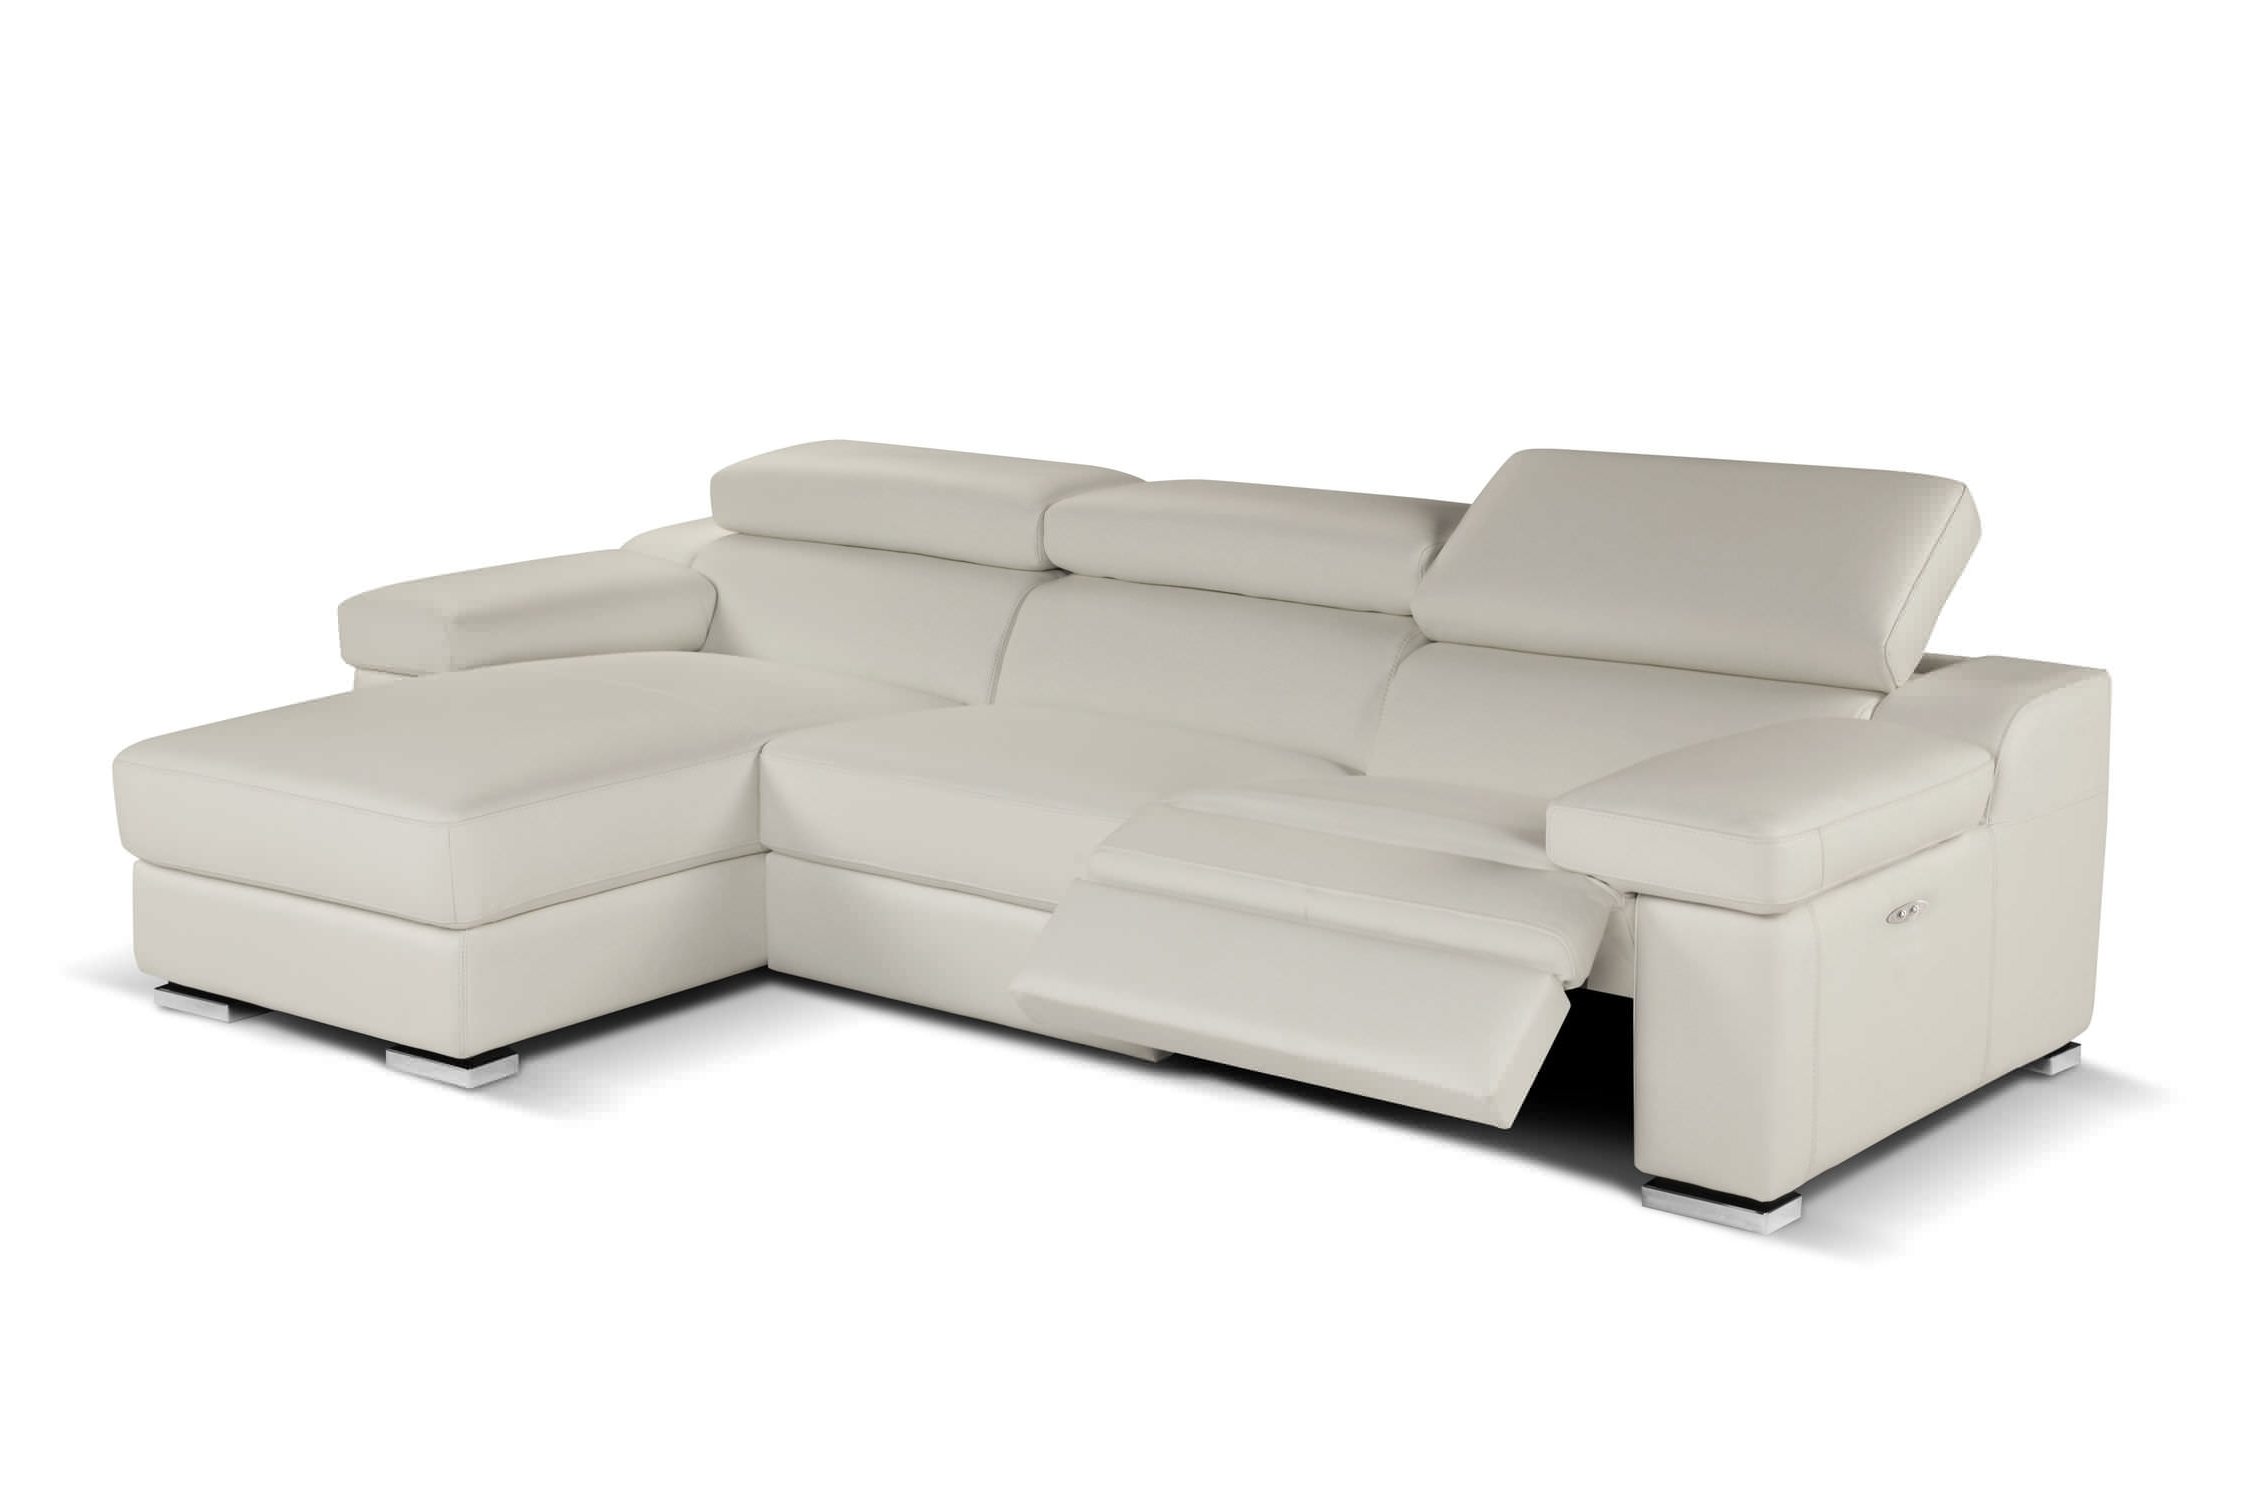 Favorite Modern Reclining Leather Sofas Pertaining To 4sofa – Hledat Googlem (Gallery 3 of 20)